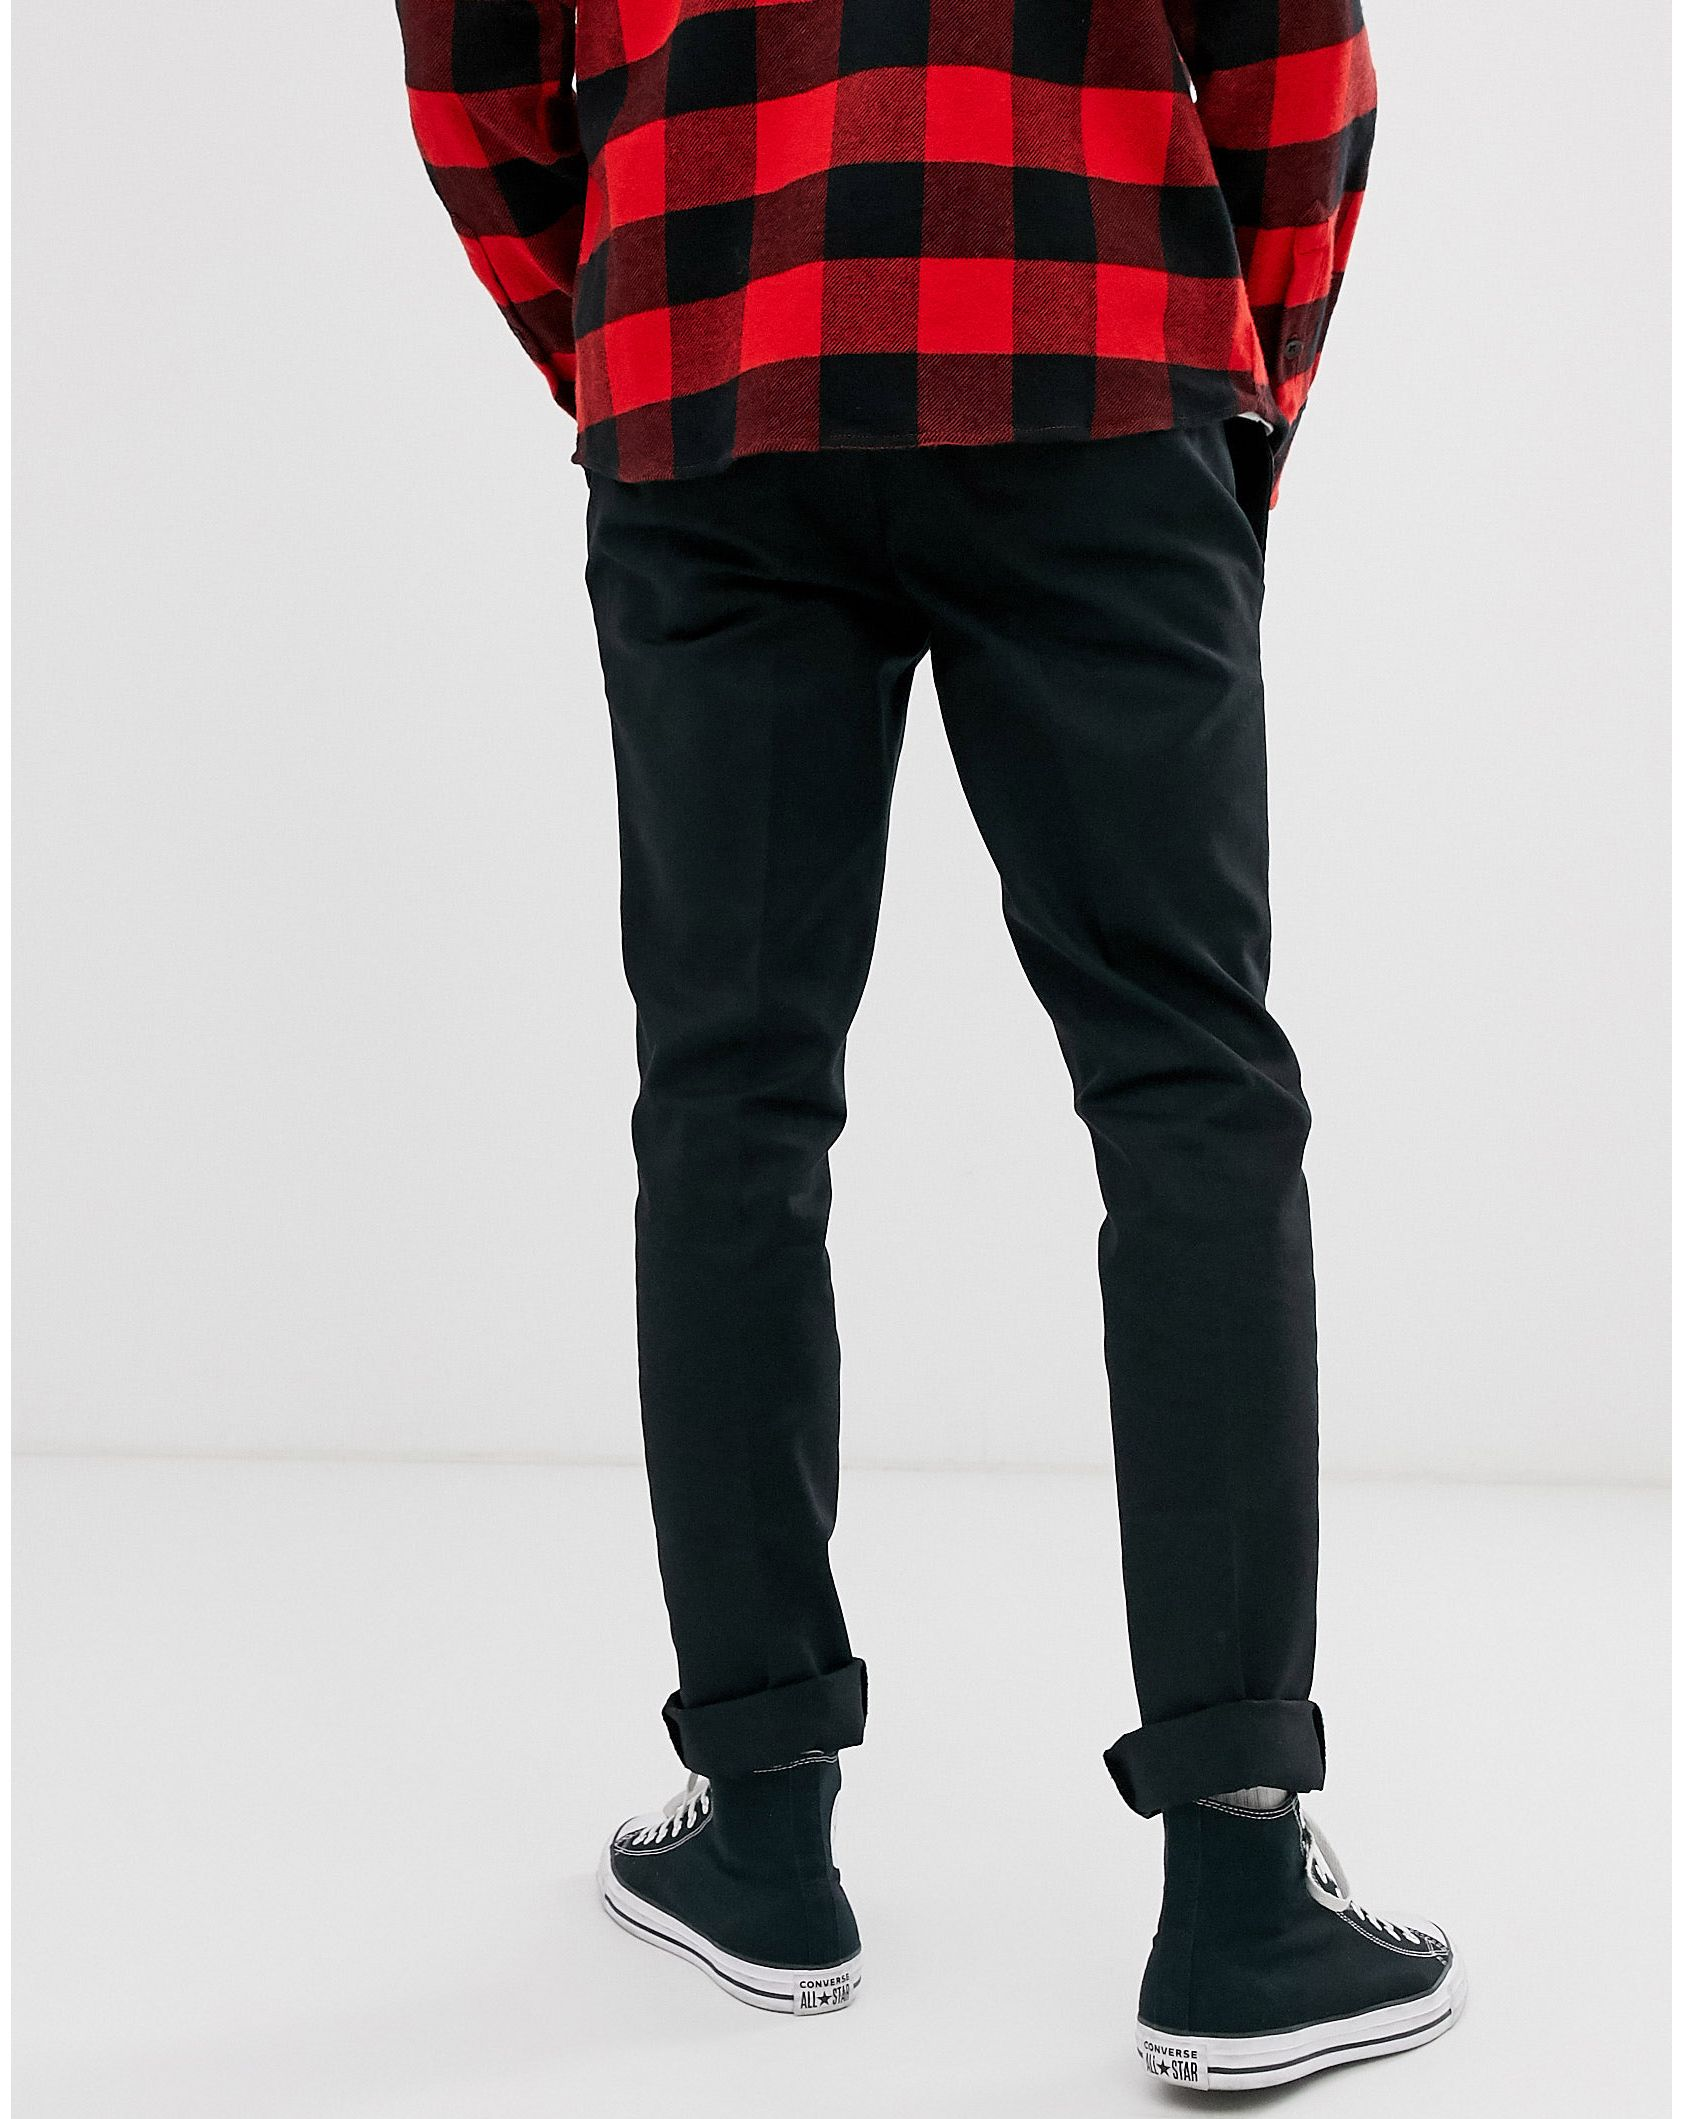 Dickies 872 slim fit work pant in black - ASOS Price Checker